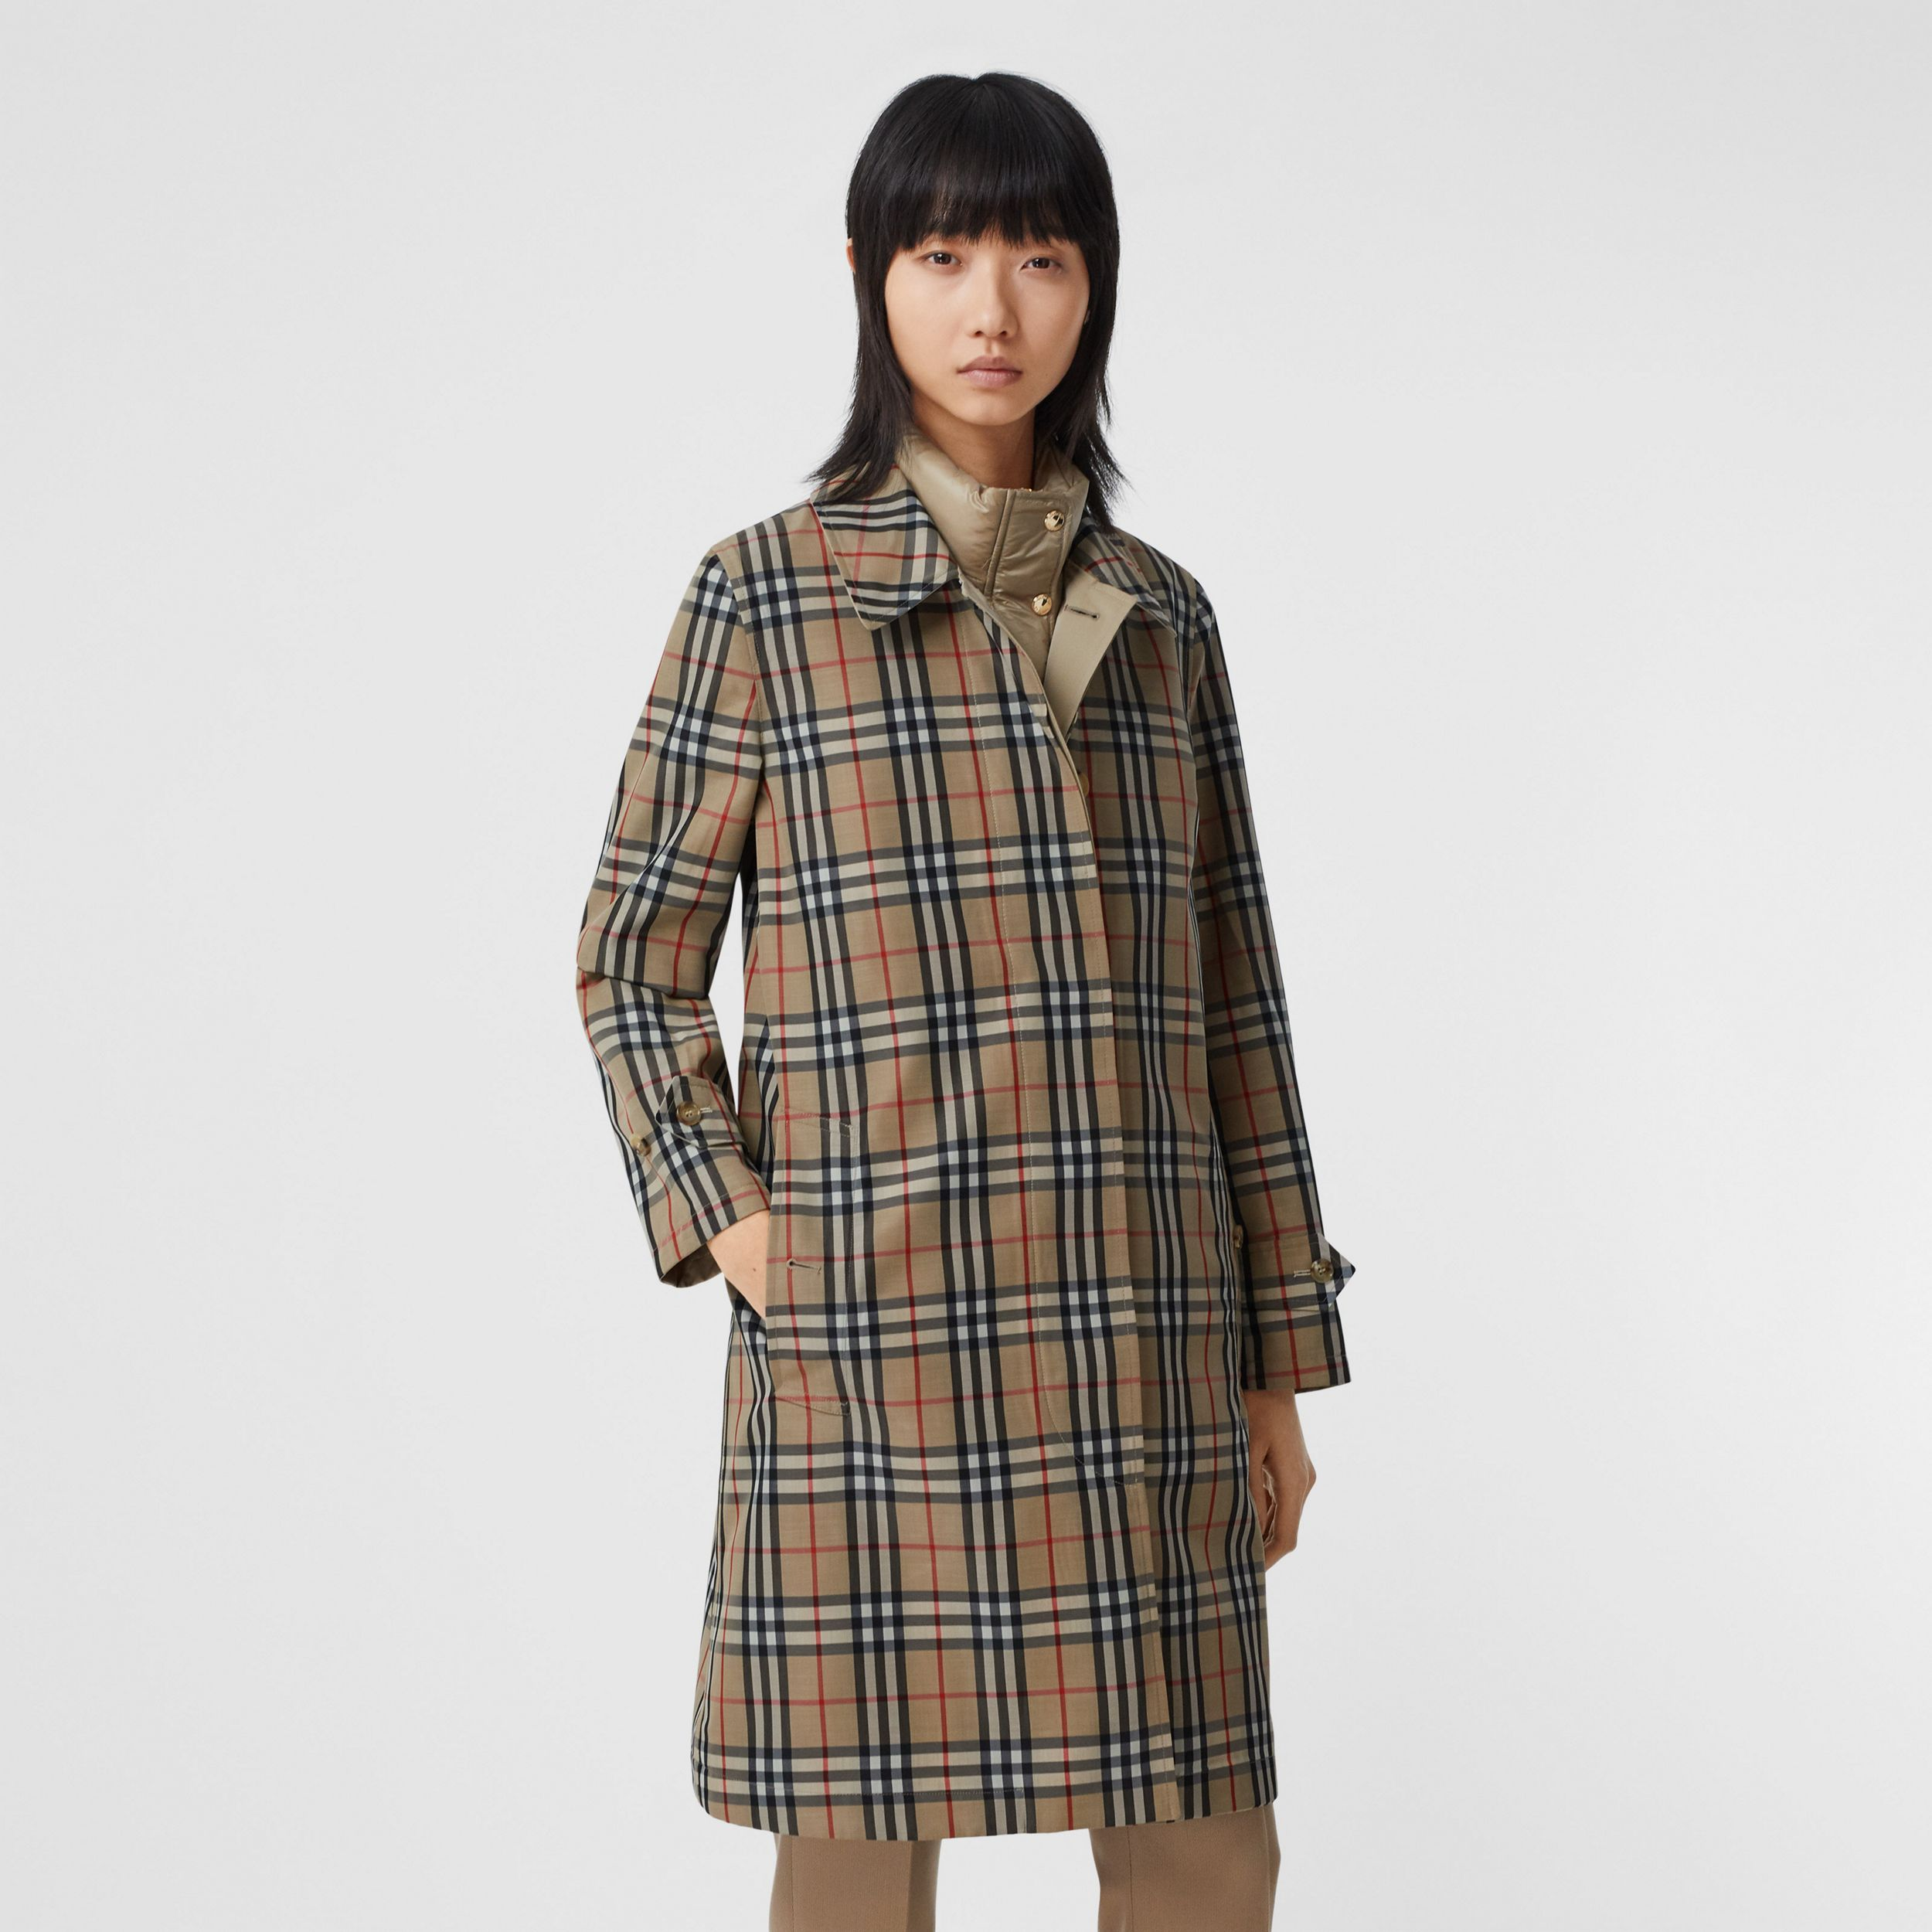 Reversible Cotton and Vintage Check Car Coat in Honey - Women | Burberry - 2